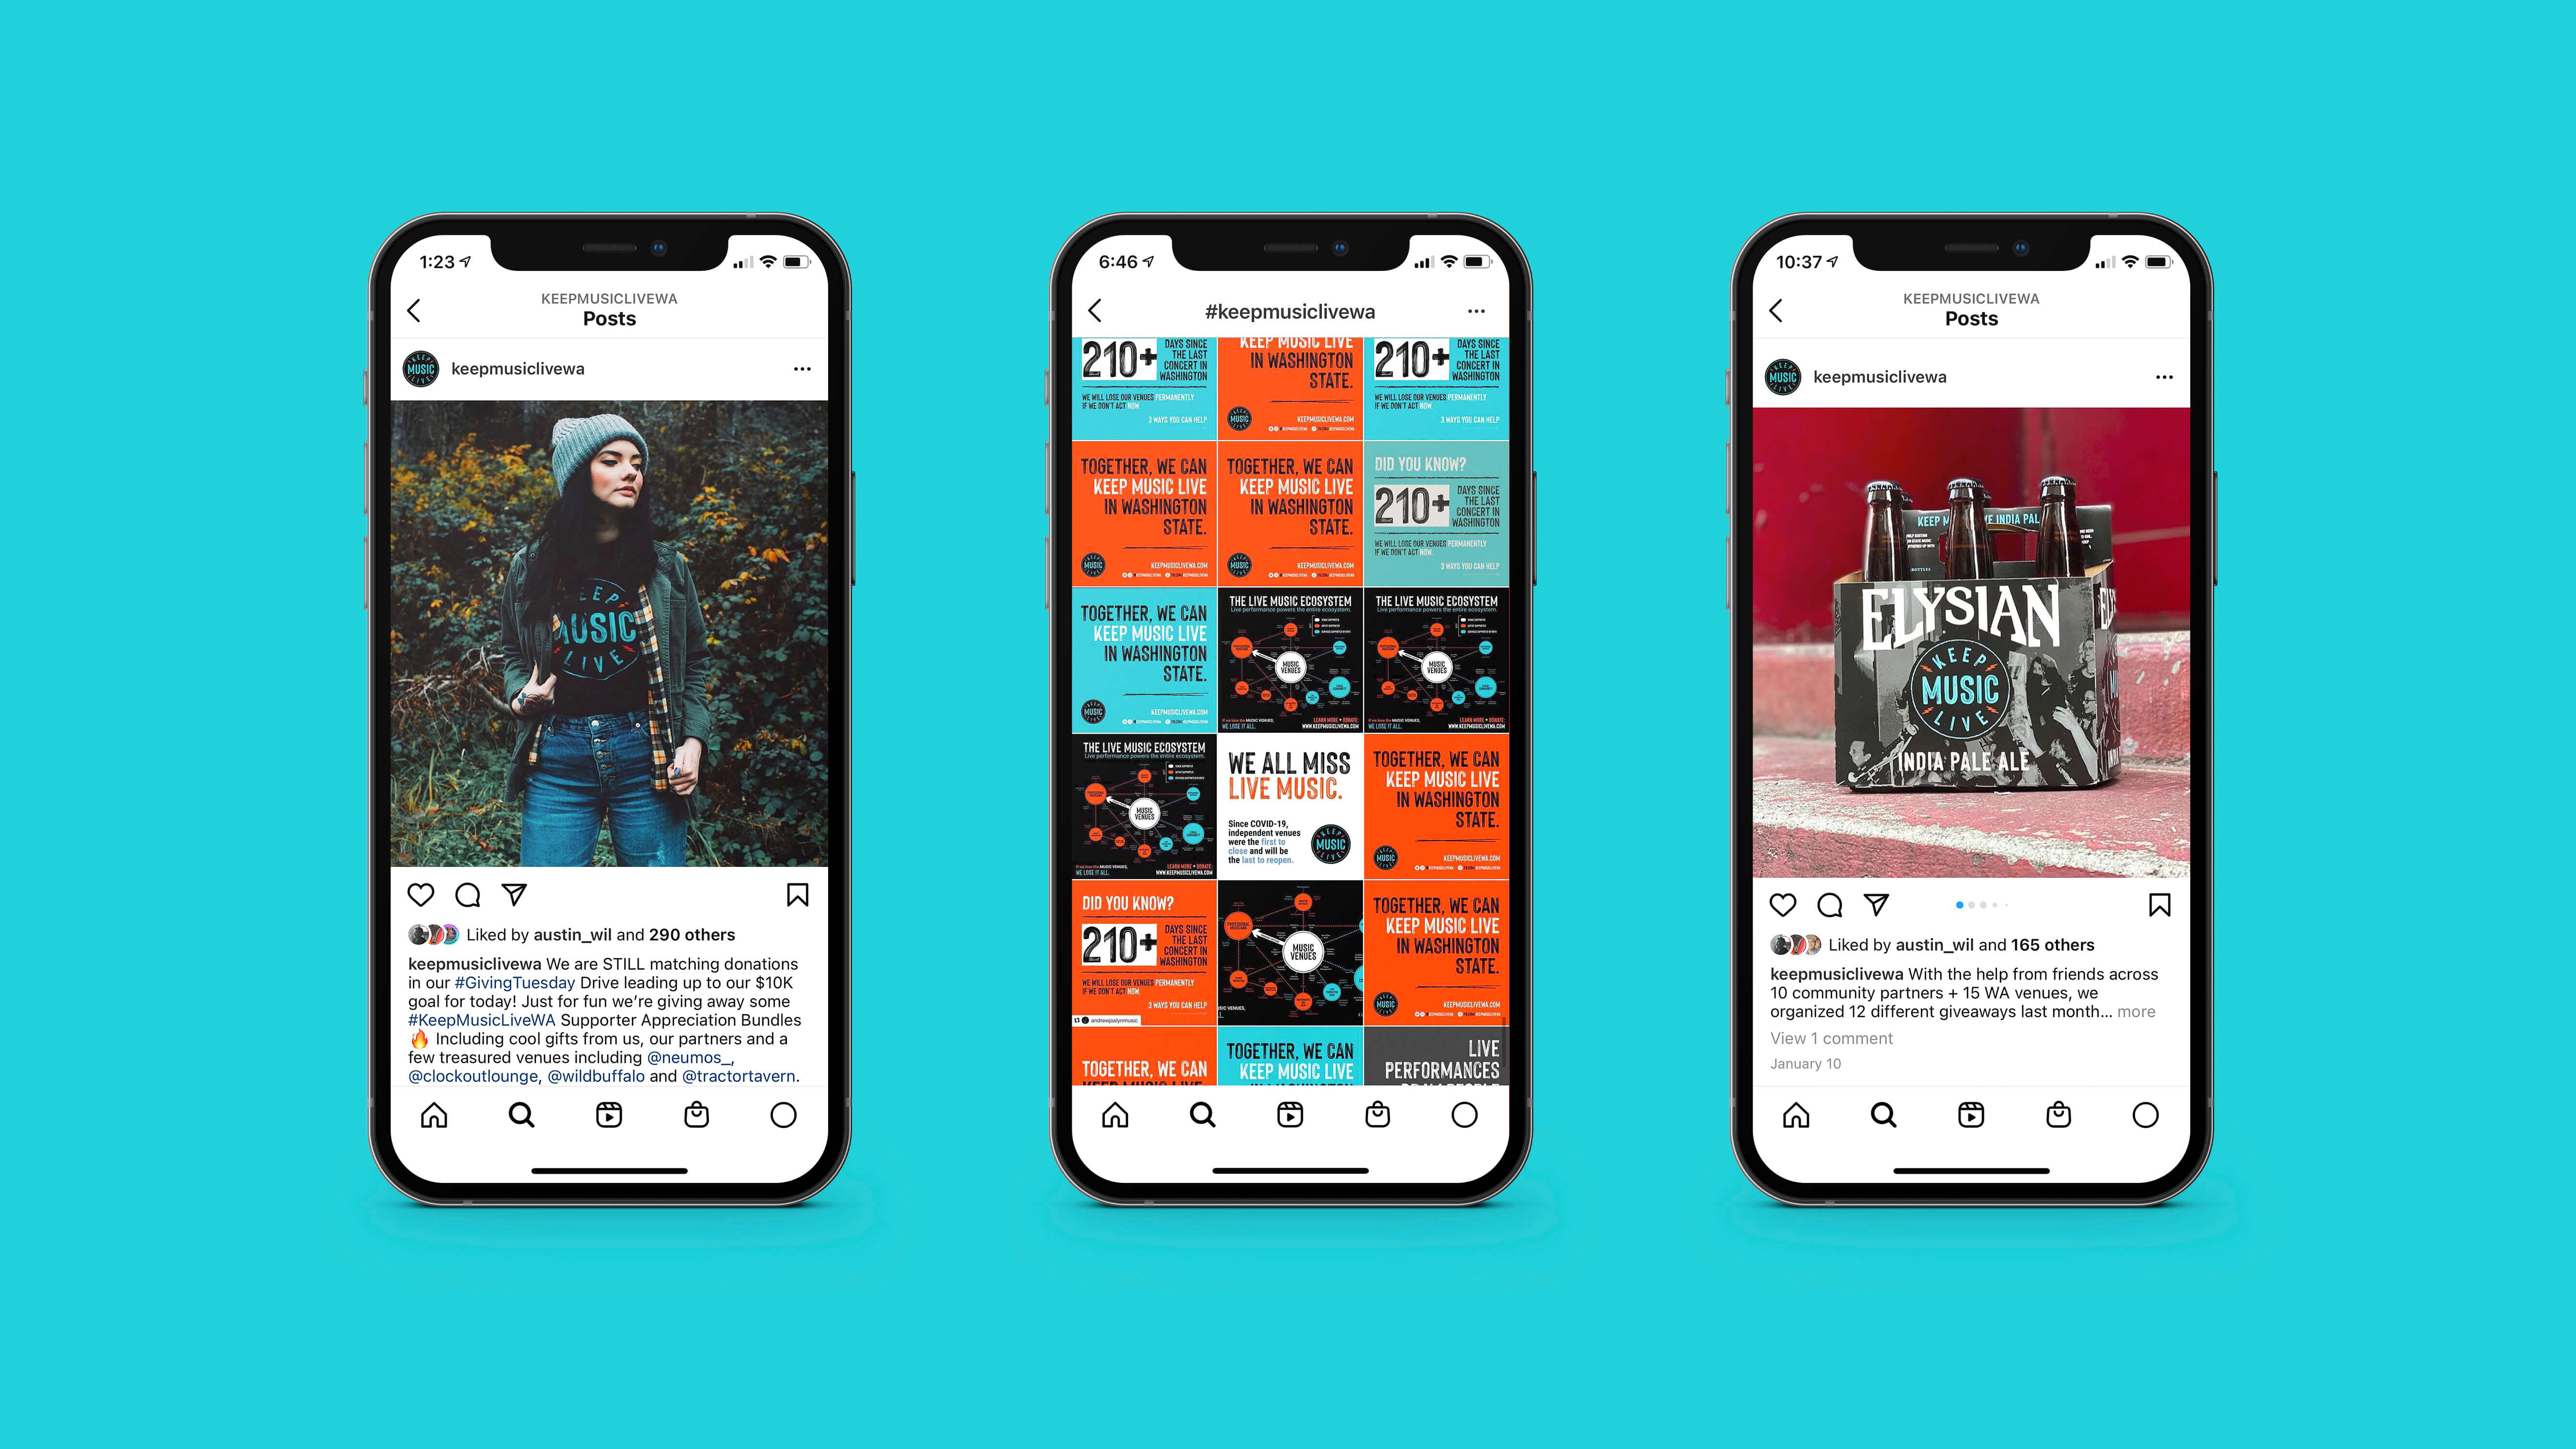 """A series of mobile phone screenshots featuring Instagram posts from the account """"@keepmusiclivewa"""" and the hashtag #keepmusiclivewa."""